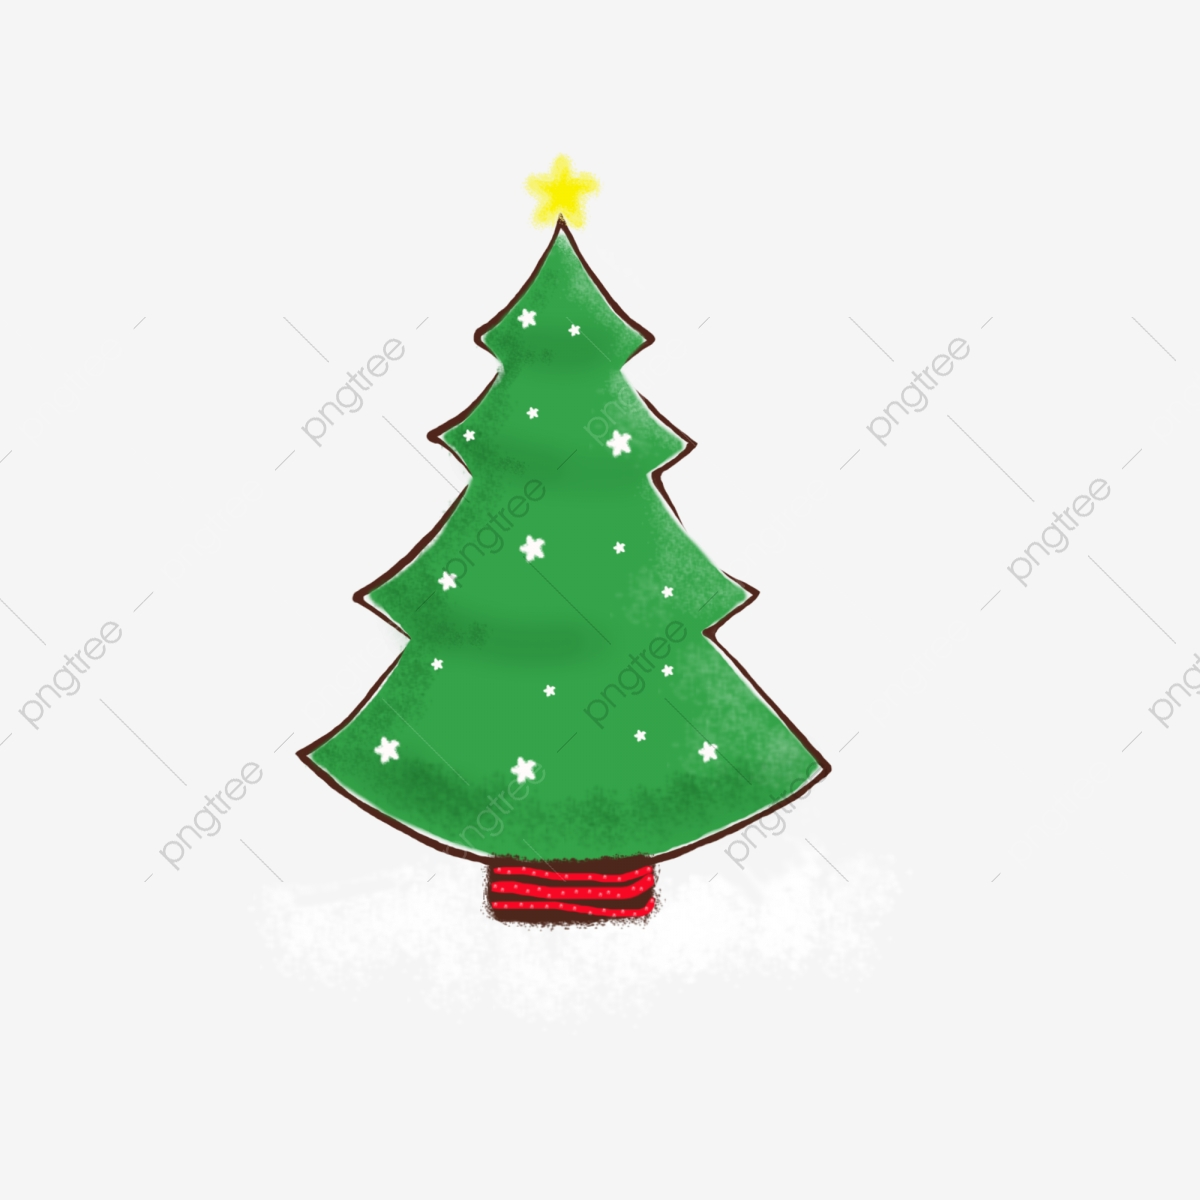 Pictures of christmas trees drawn